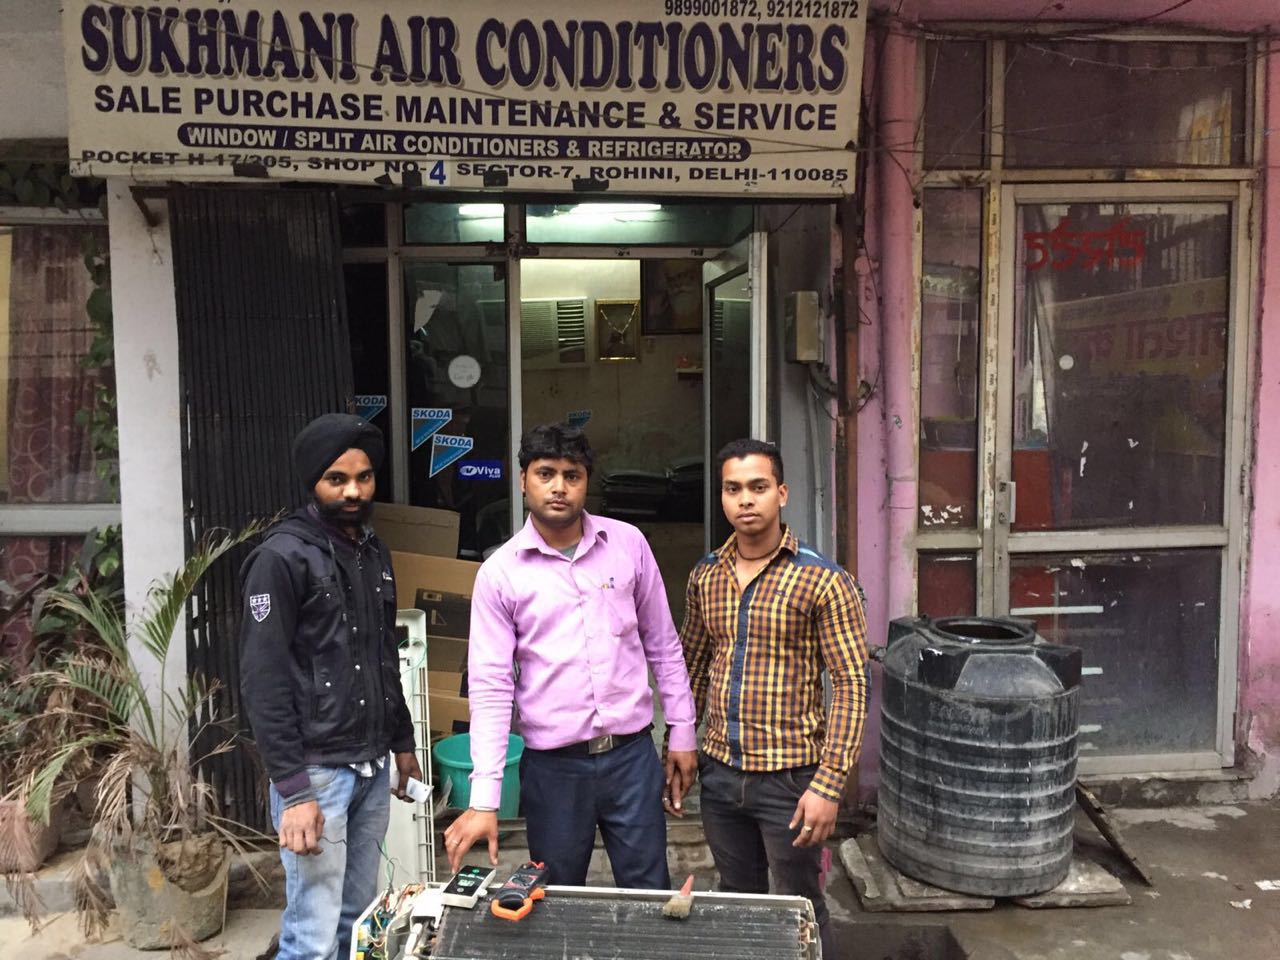 Sukhmani Air Conditioners